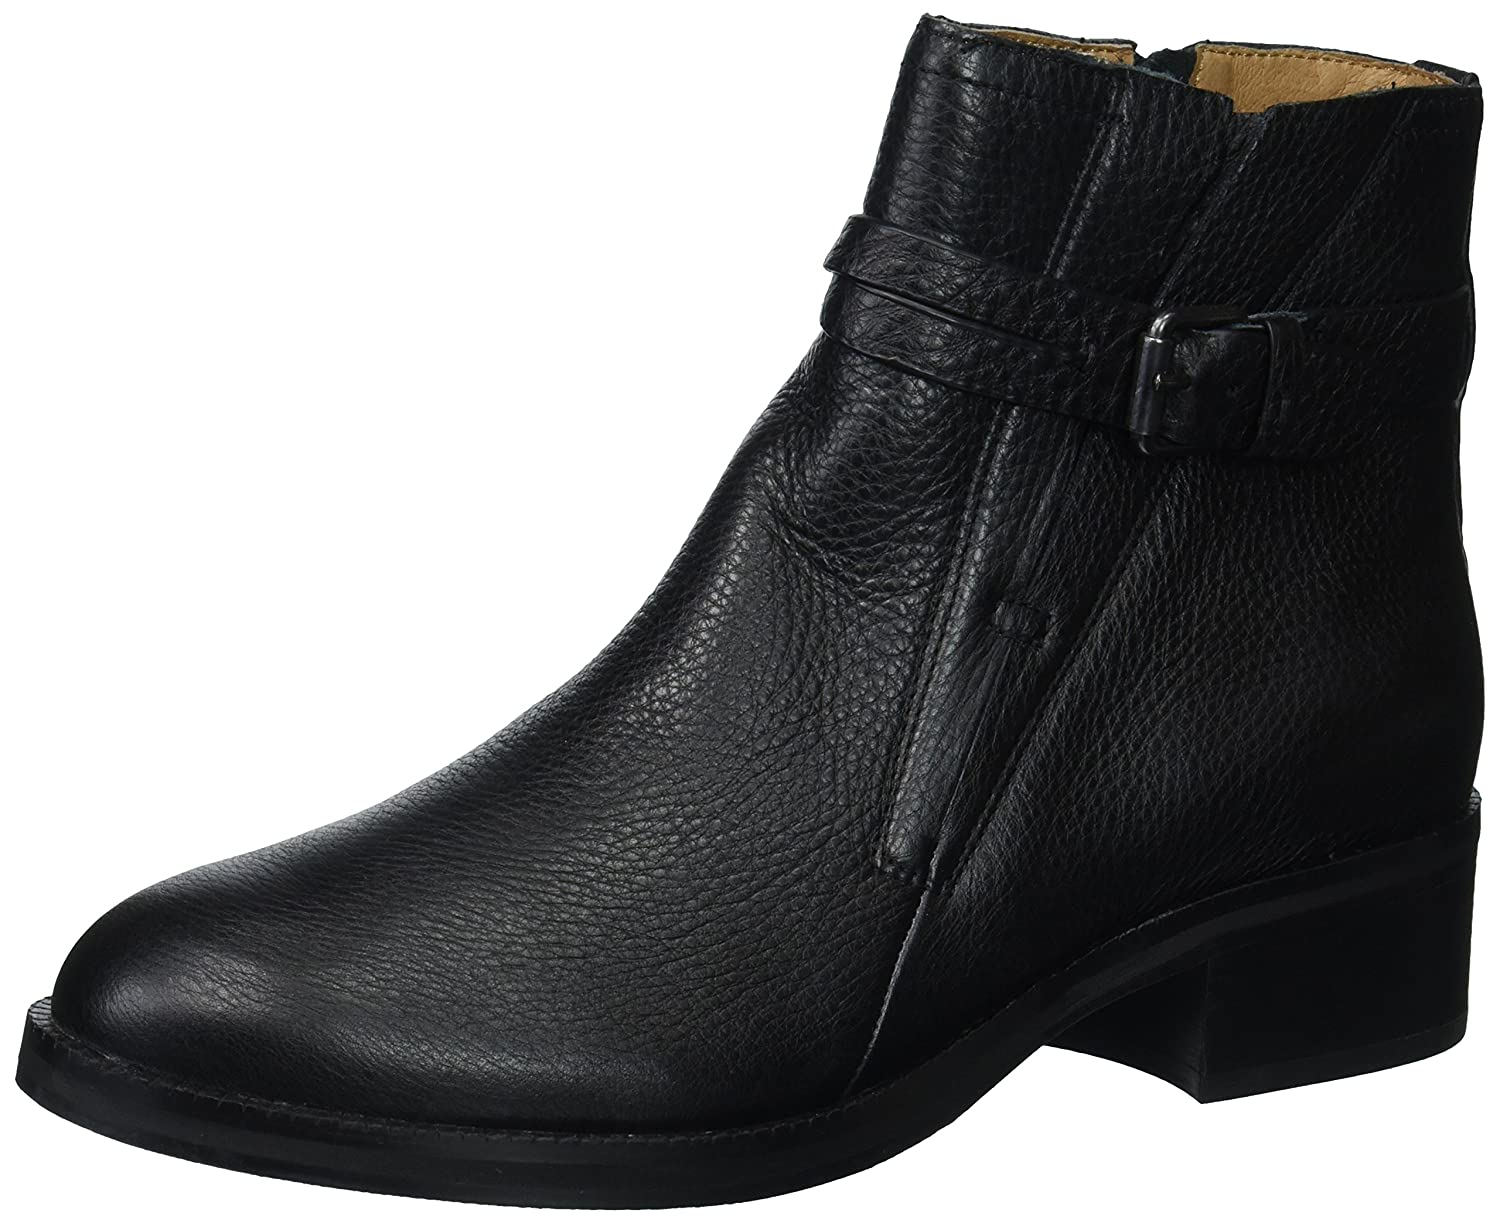 Gentle Souls Women's Percy Bootie with Buckle Detail Ankle Boot B06XXMRYDZ 9.5 B(M) US|Black